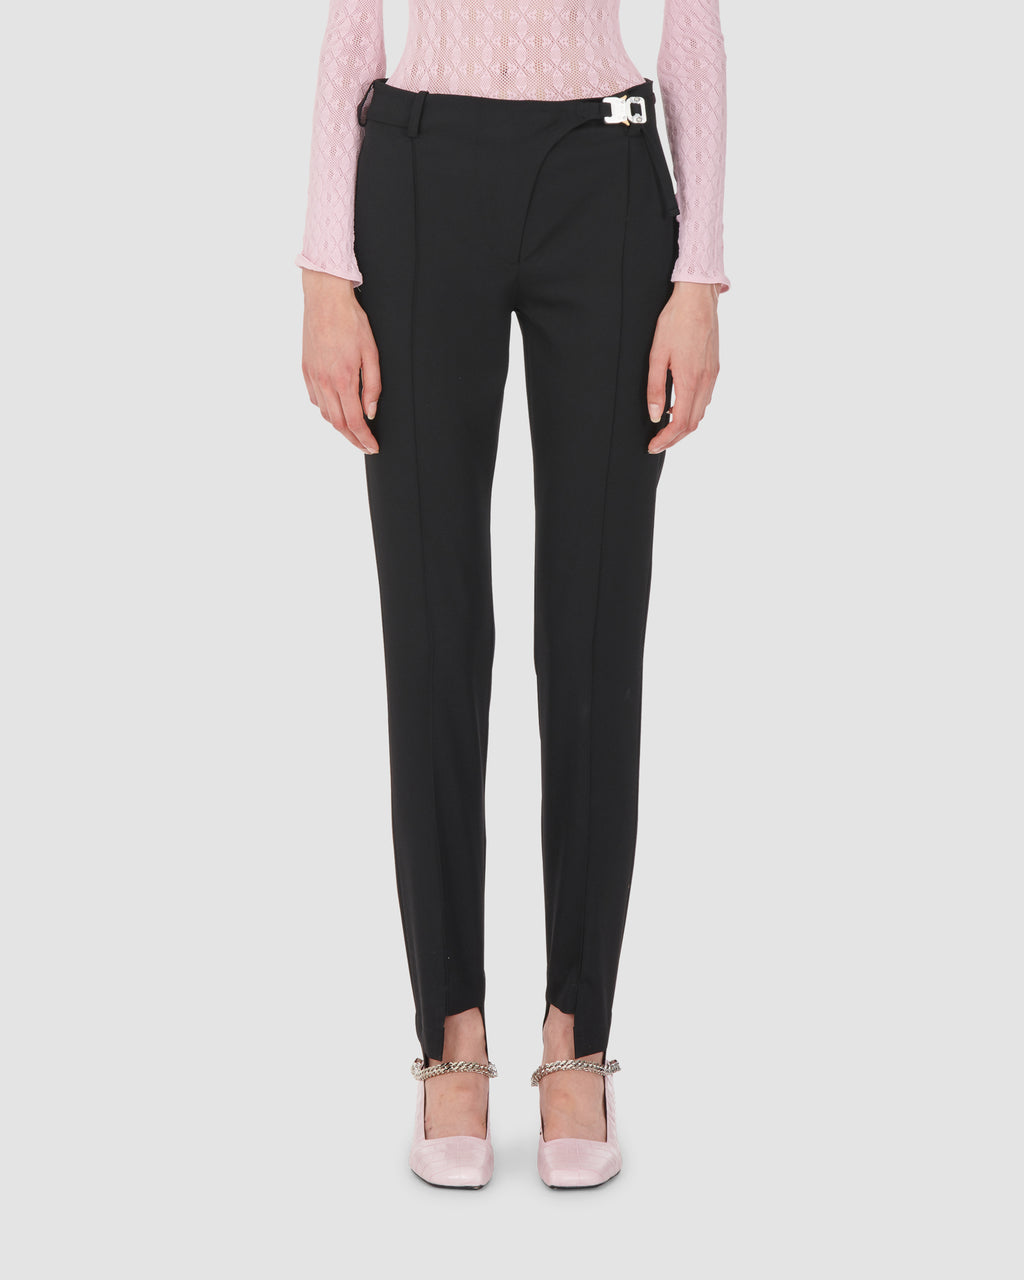 1017 ALYX 9SM | STIRRUP SUIT PANT | Pants | BLACK, Google Shopping, PANTS, S20, SS20, Trousers, Woman, WOMEN